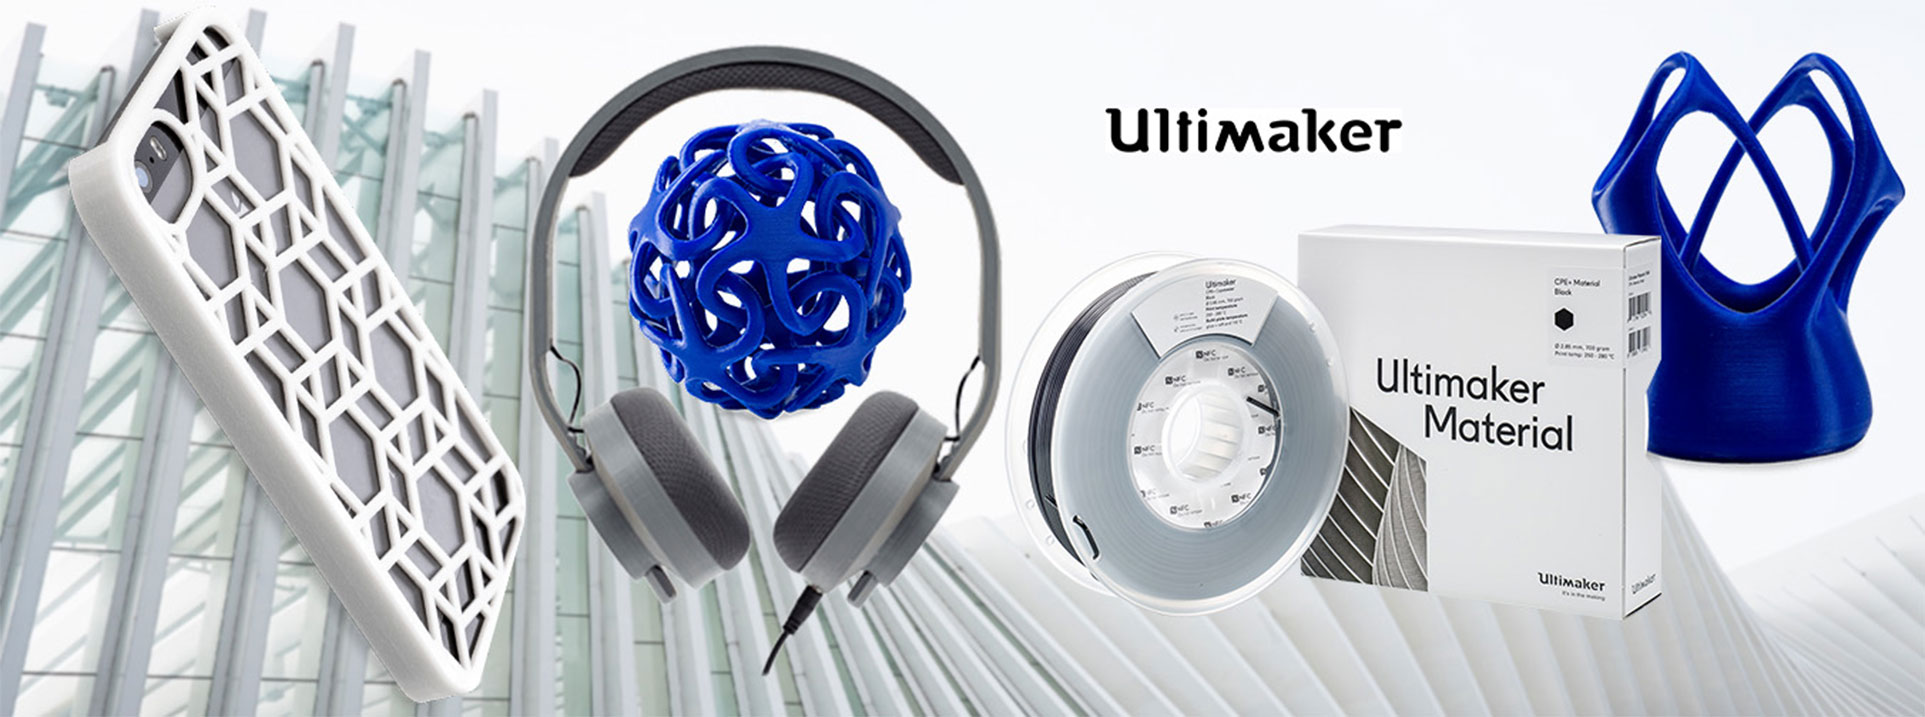 Shop and Buy Ultimaker products online in Singapore